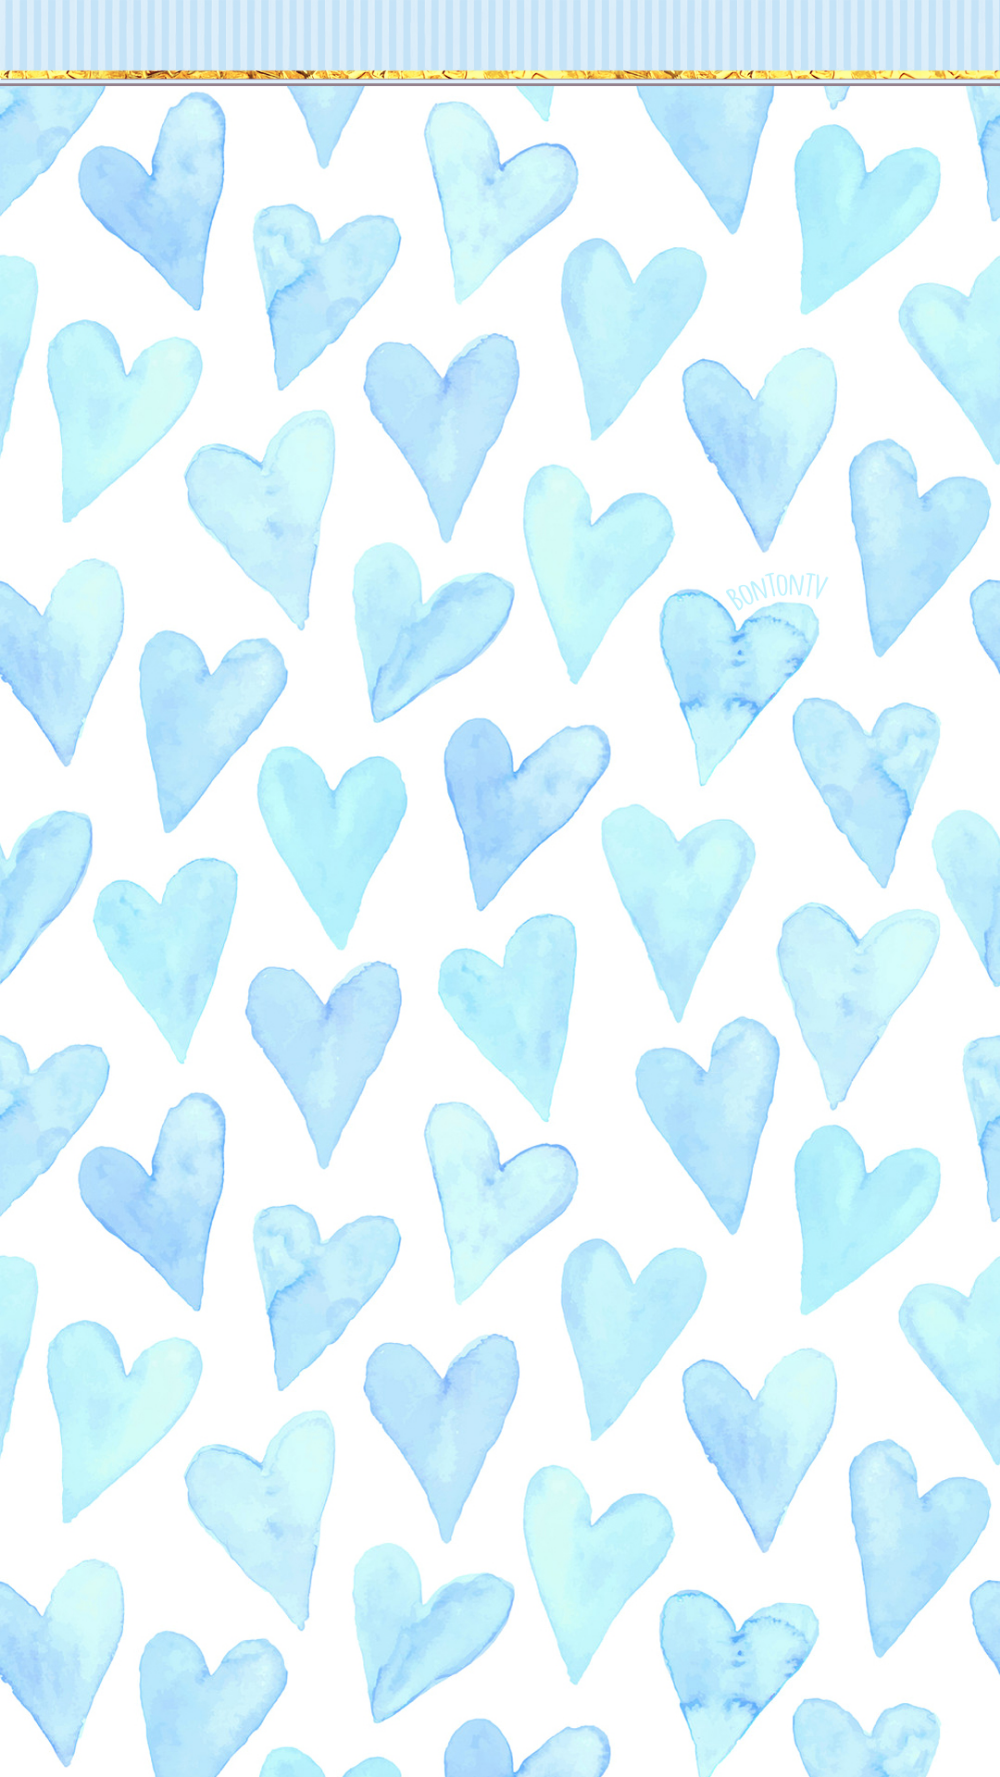 Phone Wallpapers Hd Blue Hearts Simplistic By Bonton Tv Free Backgrounds 1080x1920 W Cute Patterns Wallpaper Iphone Background Wallpaper Cute Backgrounds